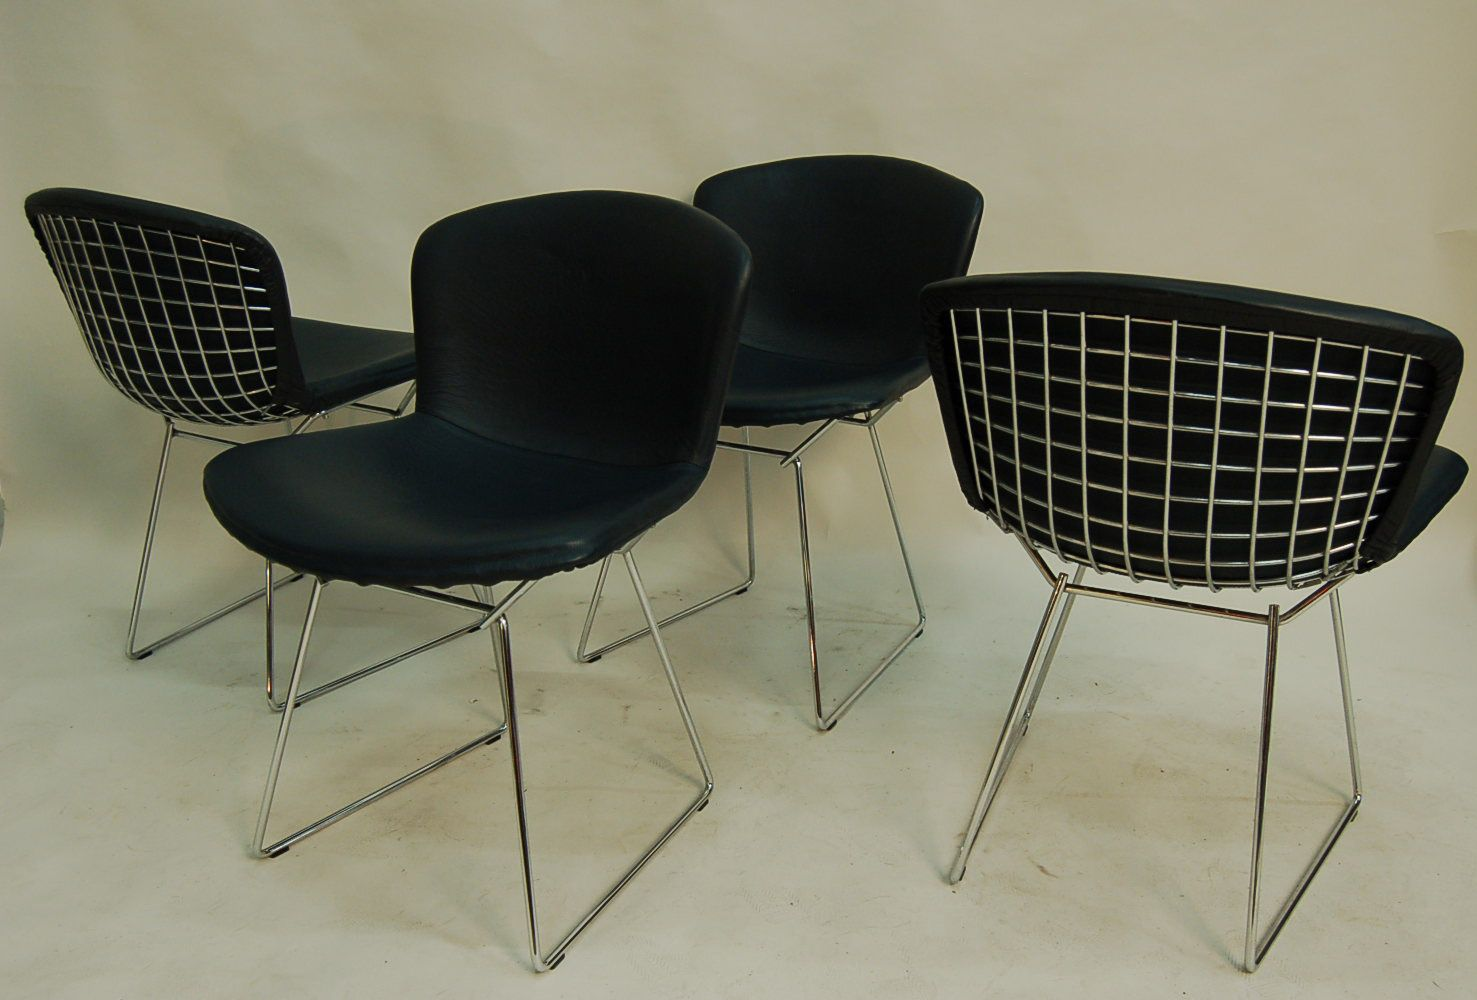 Harry bertoia for knoll inc bird chair catawiki - Harry Bertoia For Knoll Inc Bird Chair Catawiki Mid Century Dining Chairs By Harry Bertoia